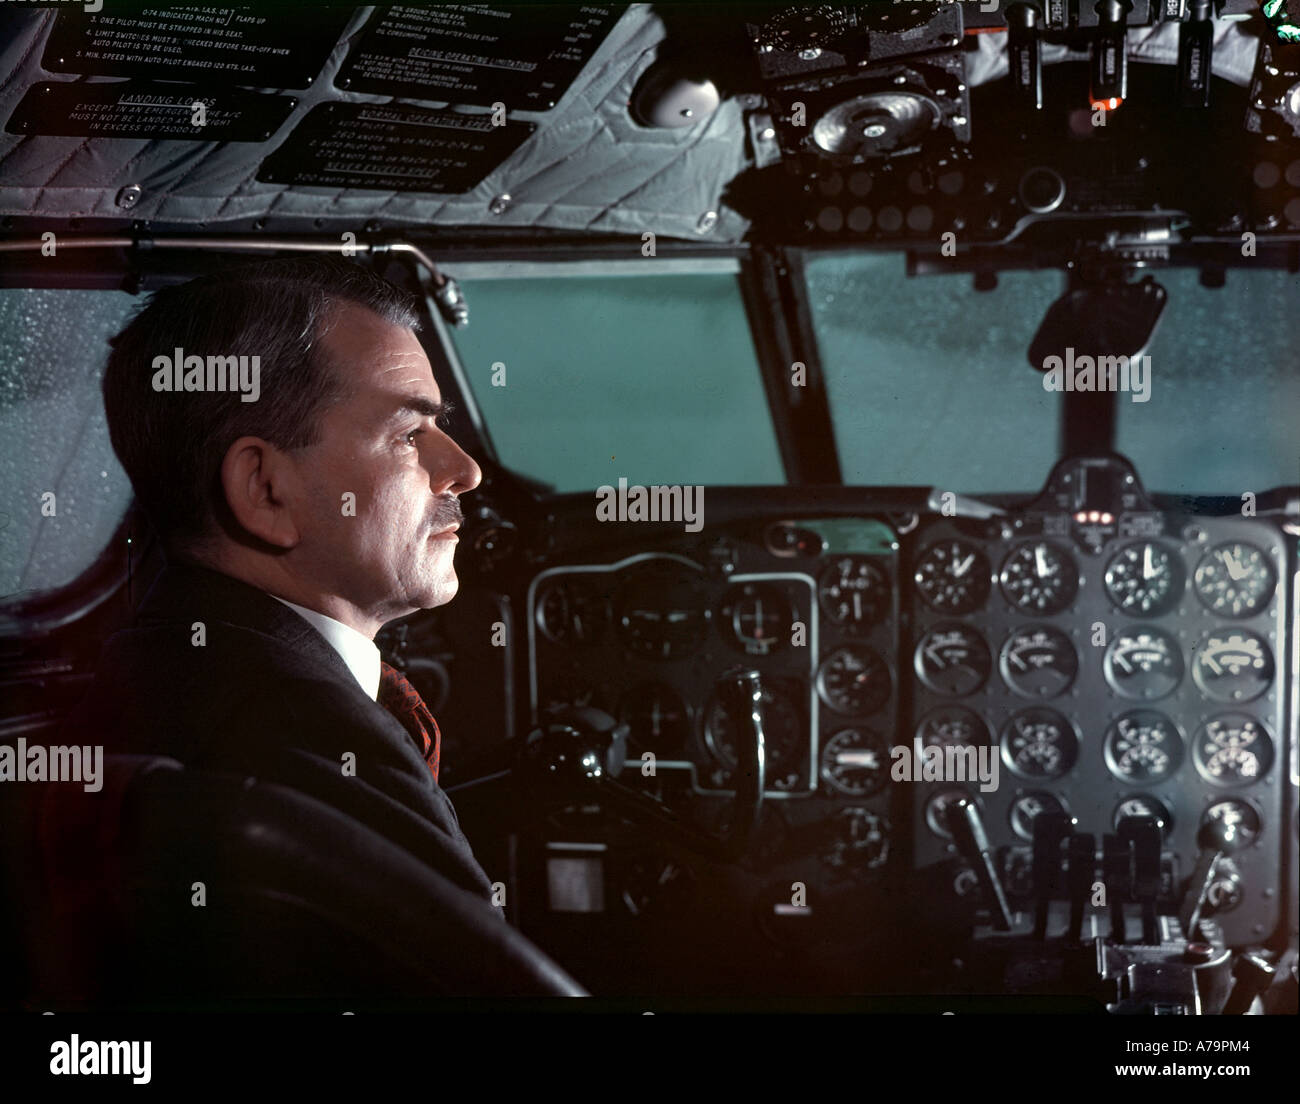 SIR FRANK WHITTLE British inventor of the jet engine 1907 to 1996 in the cockpit of a Comet jet aircraft - Stock Image